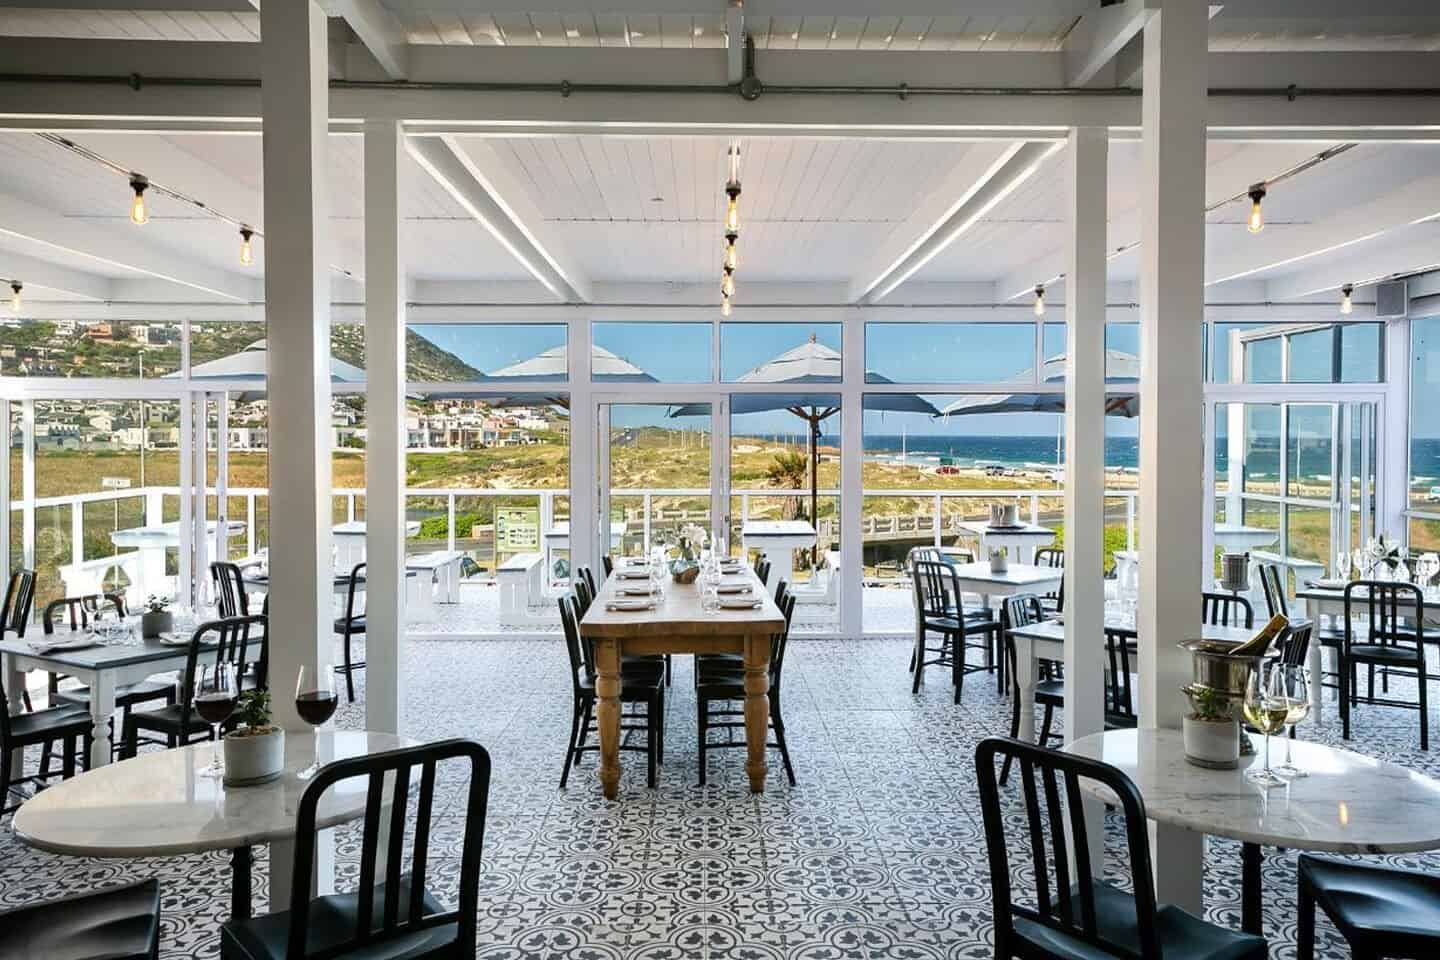 Top 15 Outdoor Restaurants Cape Town (Covid Friendly Restaurants Cape Town)